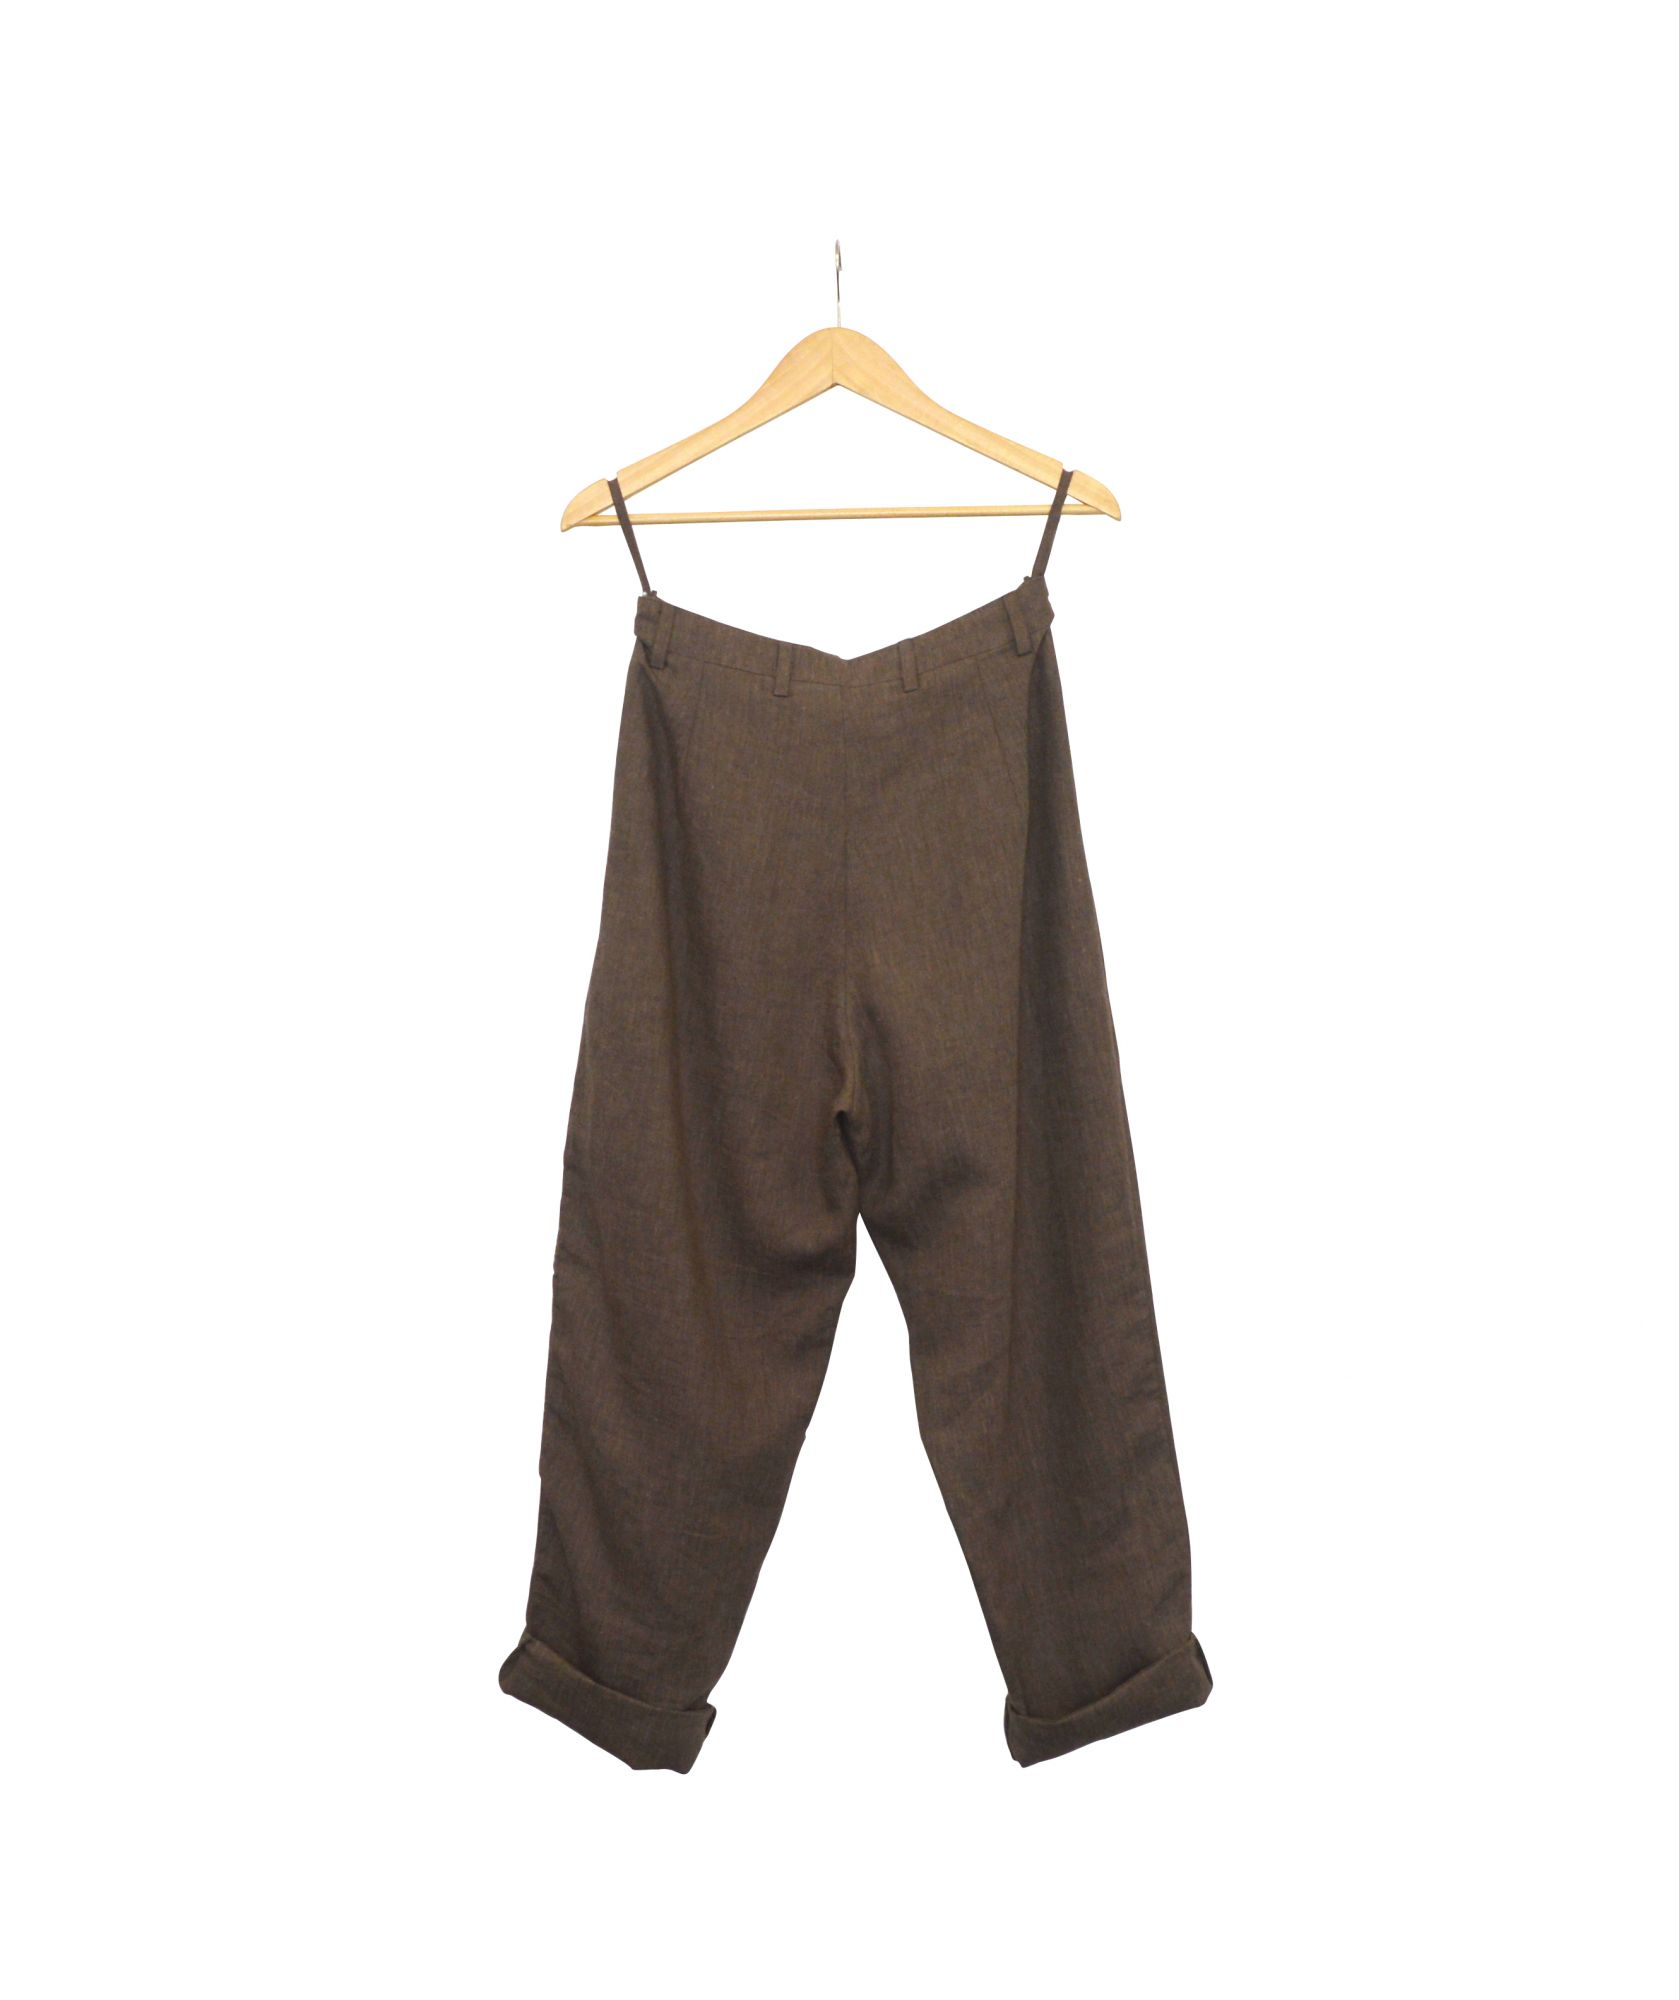 Pleated Trousers - Linen - Umber Brown